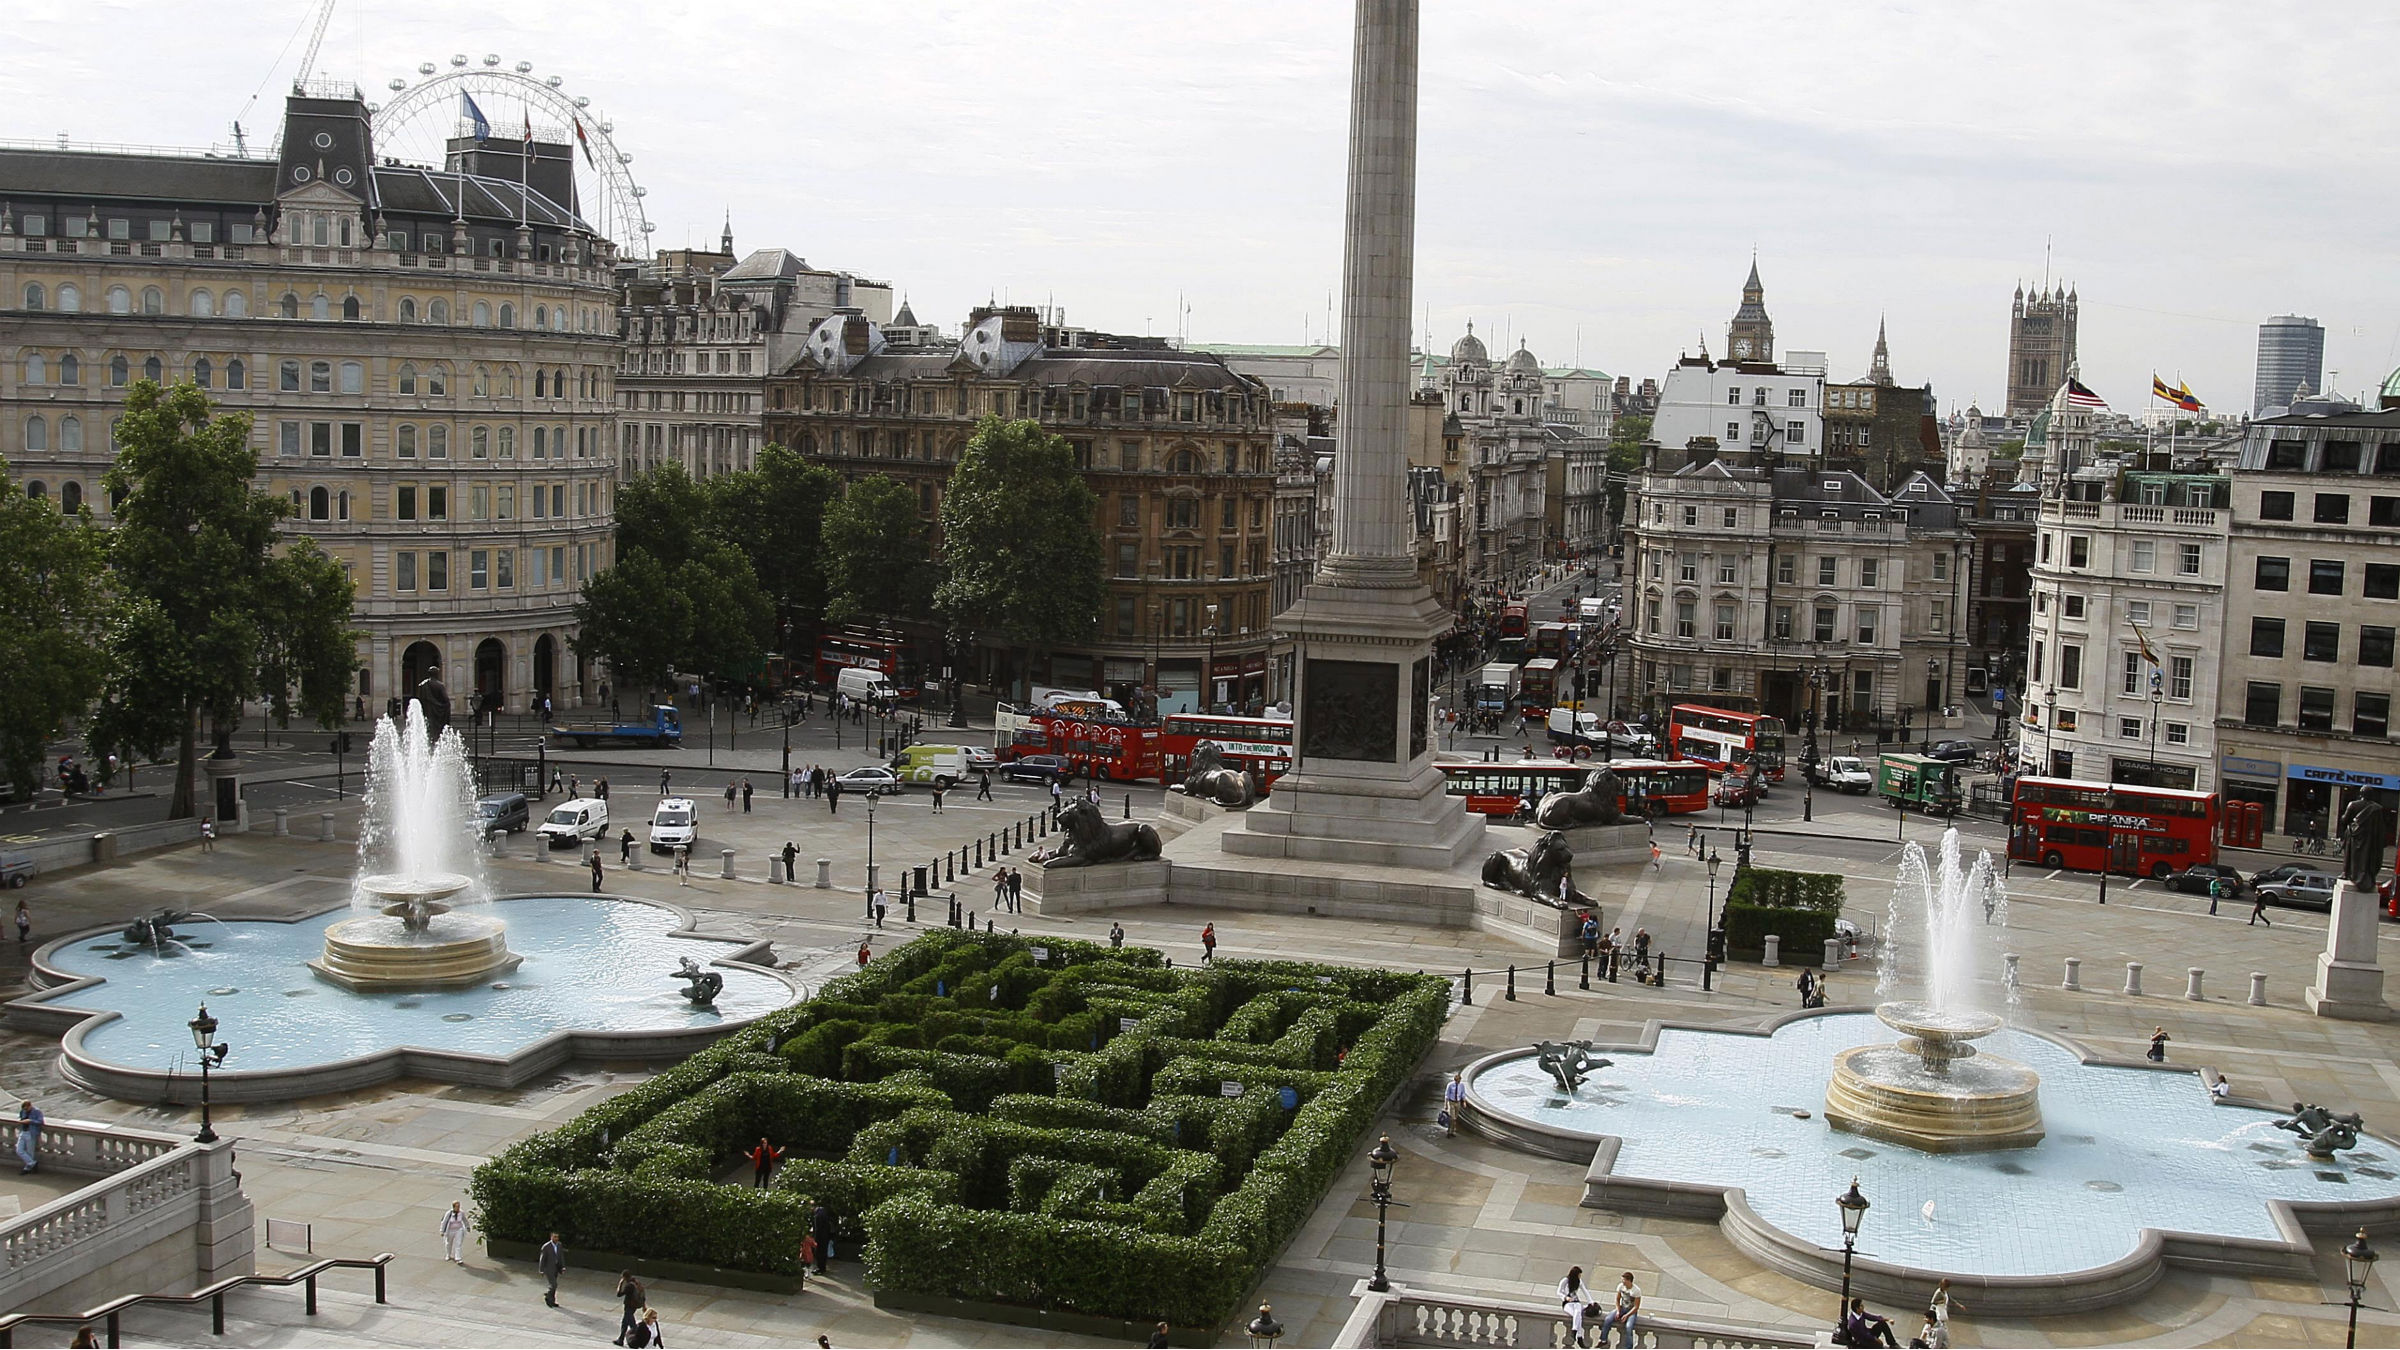 A maze is constructed in Trafalgar Square, between the fountains at the foot of Nelson's Column, in London, as part of a project by the West End Partnership to encourage visitors to explore hidden corners of the West End area of London, Monday, Aug. 2, 2010. The hedge maze is open to all visitors to explore and a program of cultural activities are planned to entertain those who venture into the labyrinth. Big Bens clock tower and part of Houses of Parliament seen on horizon centre right, and London Eye wheel back left.